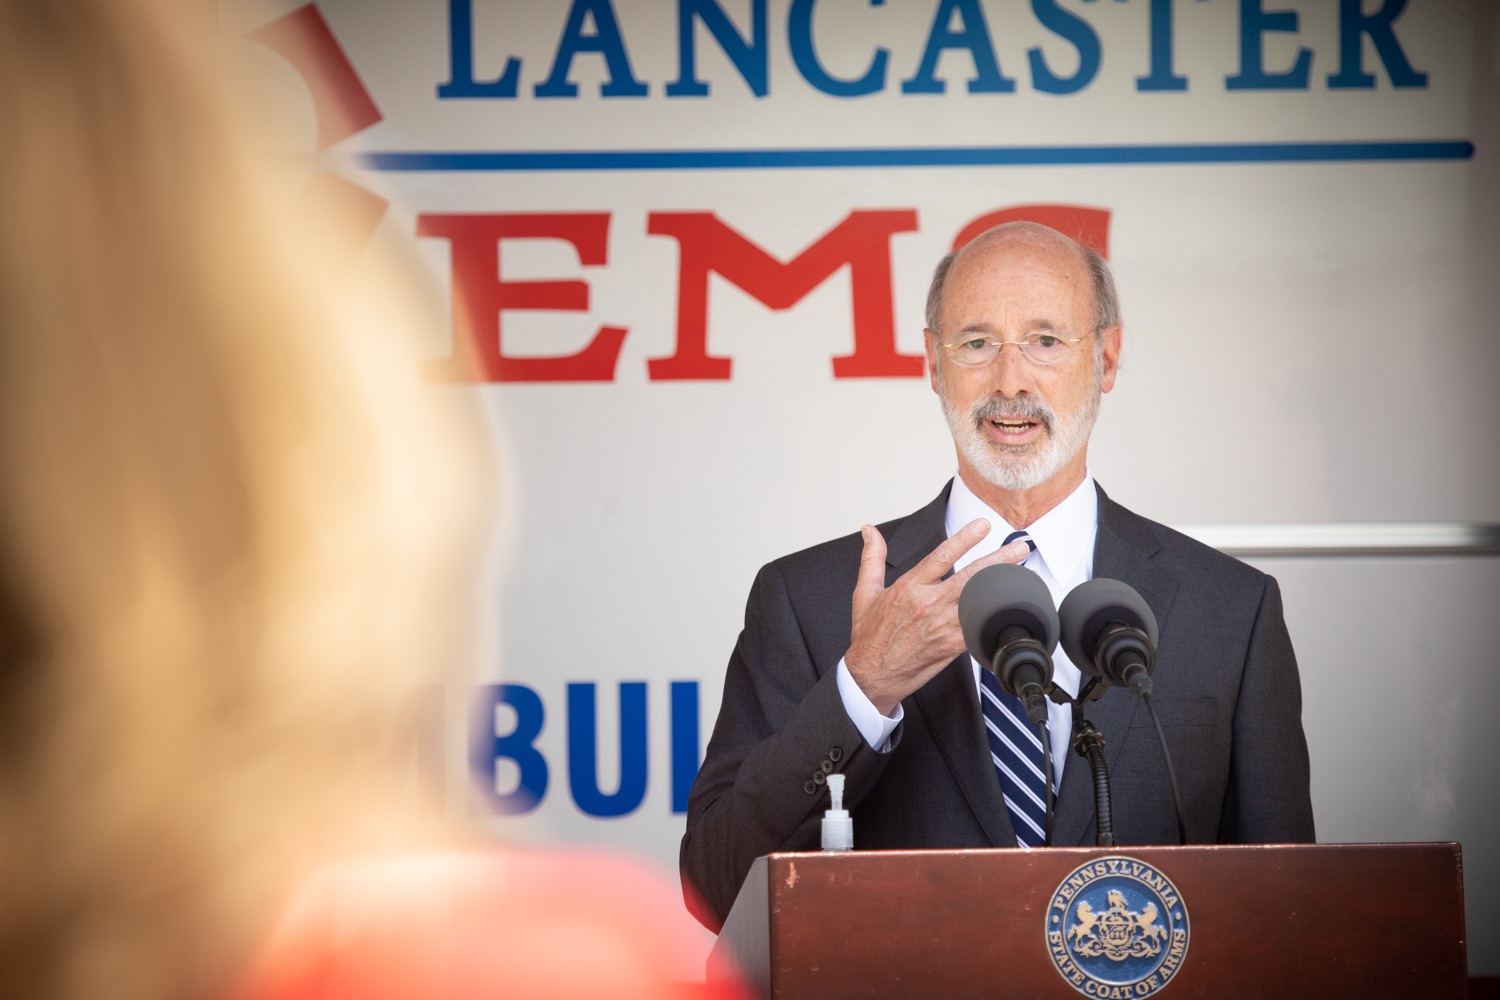 "<a href=""https://filesource.wostreaming.net/commonwealthofpa/photo/18180_gov_first_responders_dz_008.jpg"" target=""_blank"">⇣ Download Photo<br></a>Pennsylvania Governor Tom Wolf speaking to the press. Governor Tom Wolf visited the Millersville location of Lancaster EMS today to thank first responders and learn about how they are adapting their critical work during the states response to the COVID-19 pandemic.  Millersville, PA  July 30, 2020"